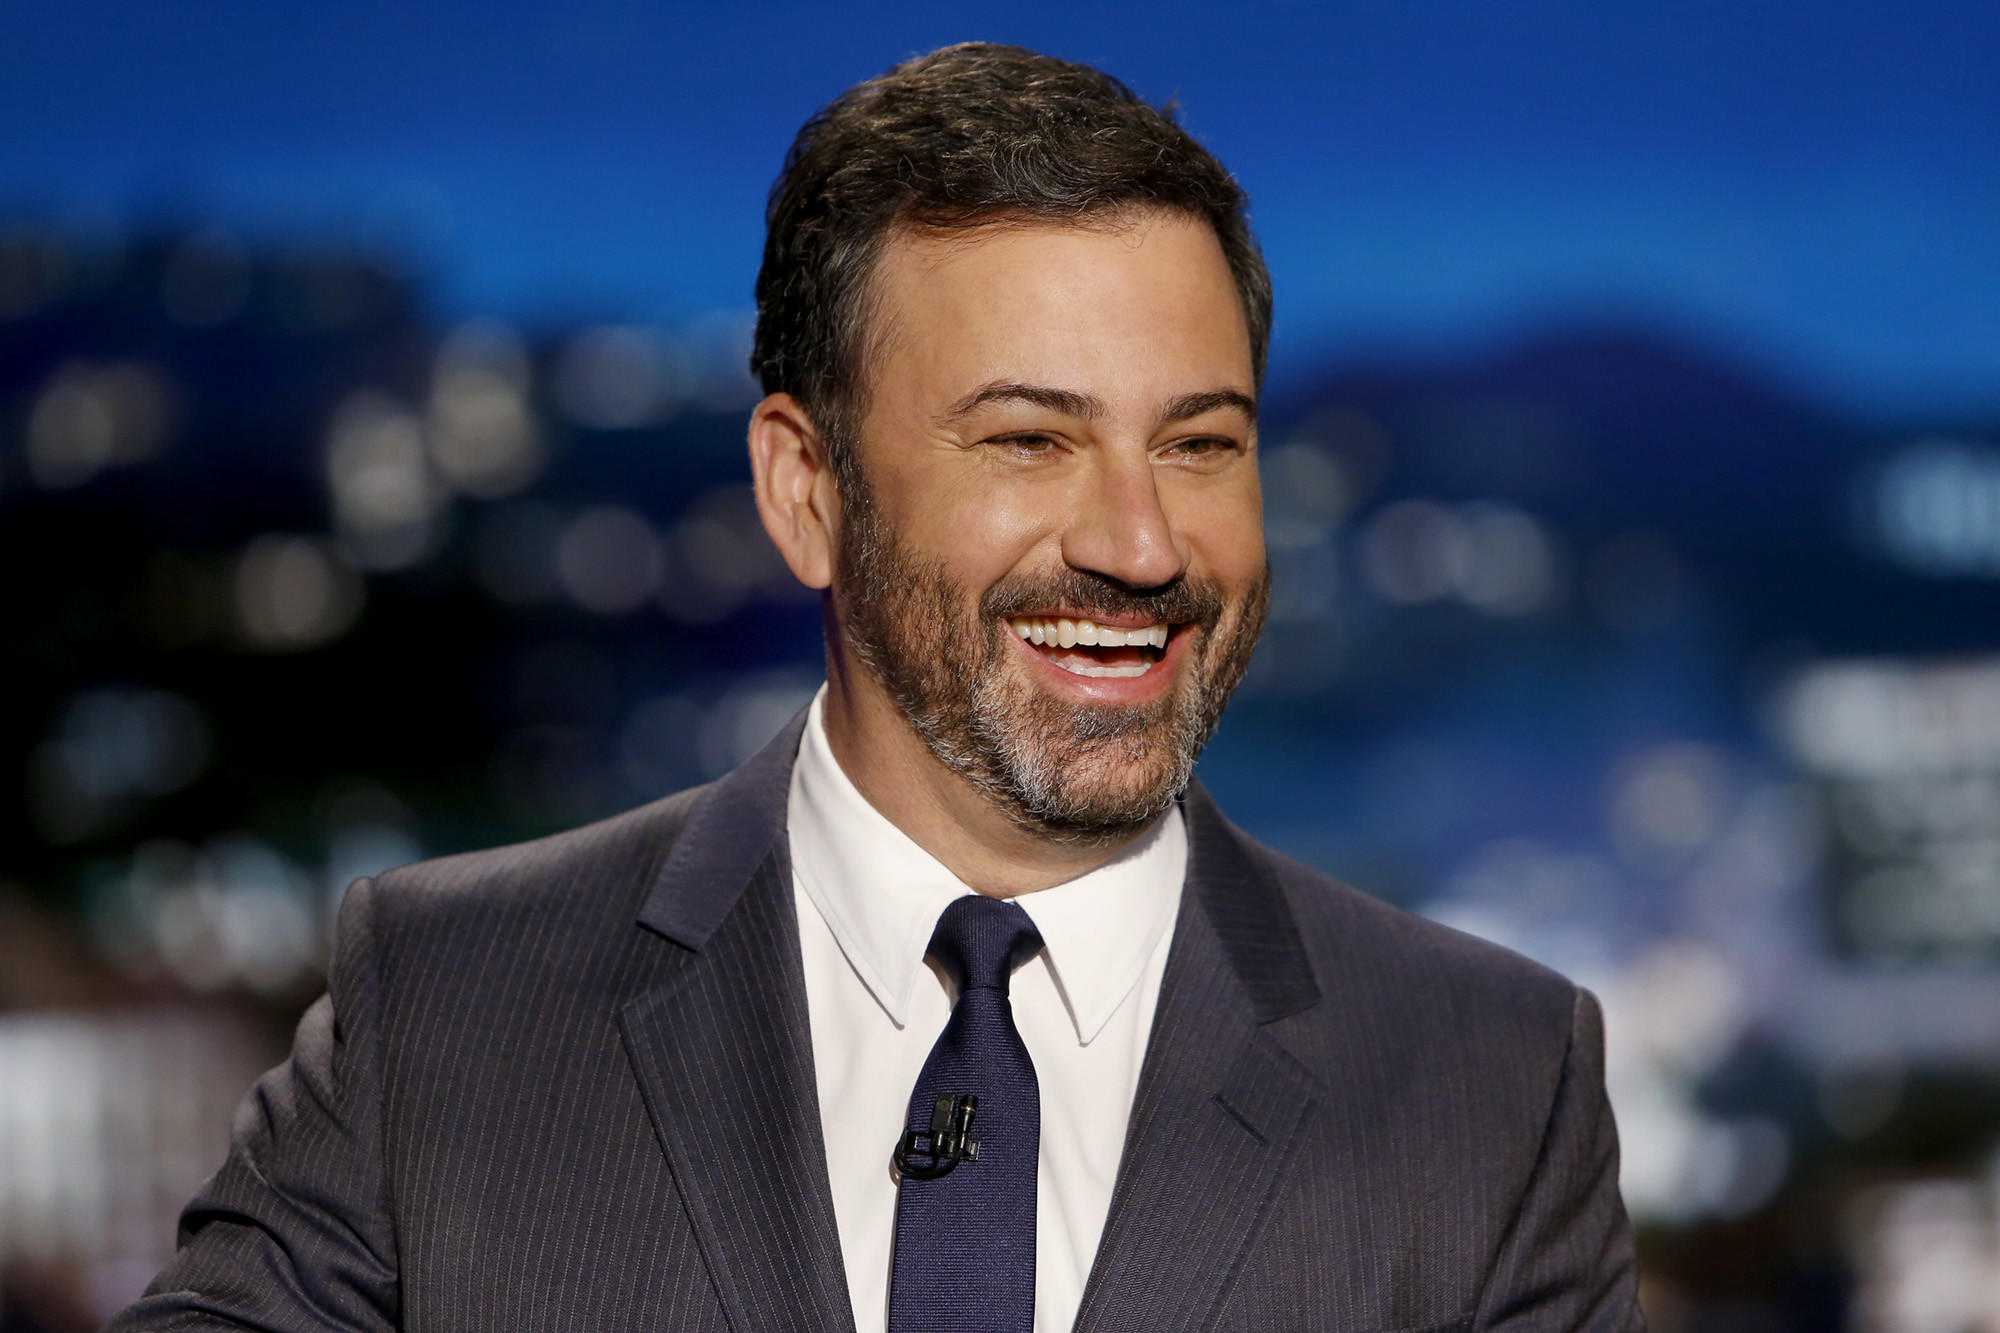 Jimmy Kimmel Offers The Latest On His Son S Health He Is